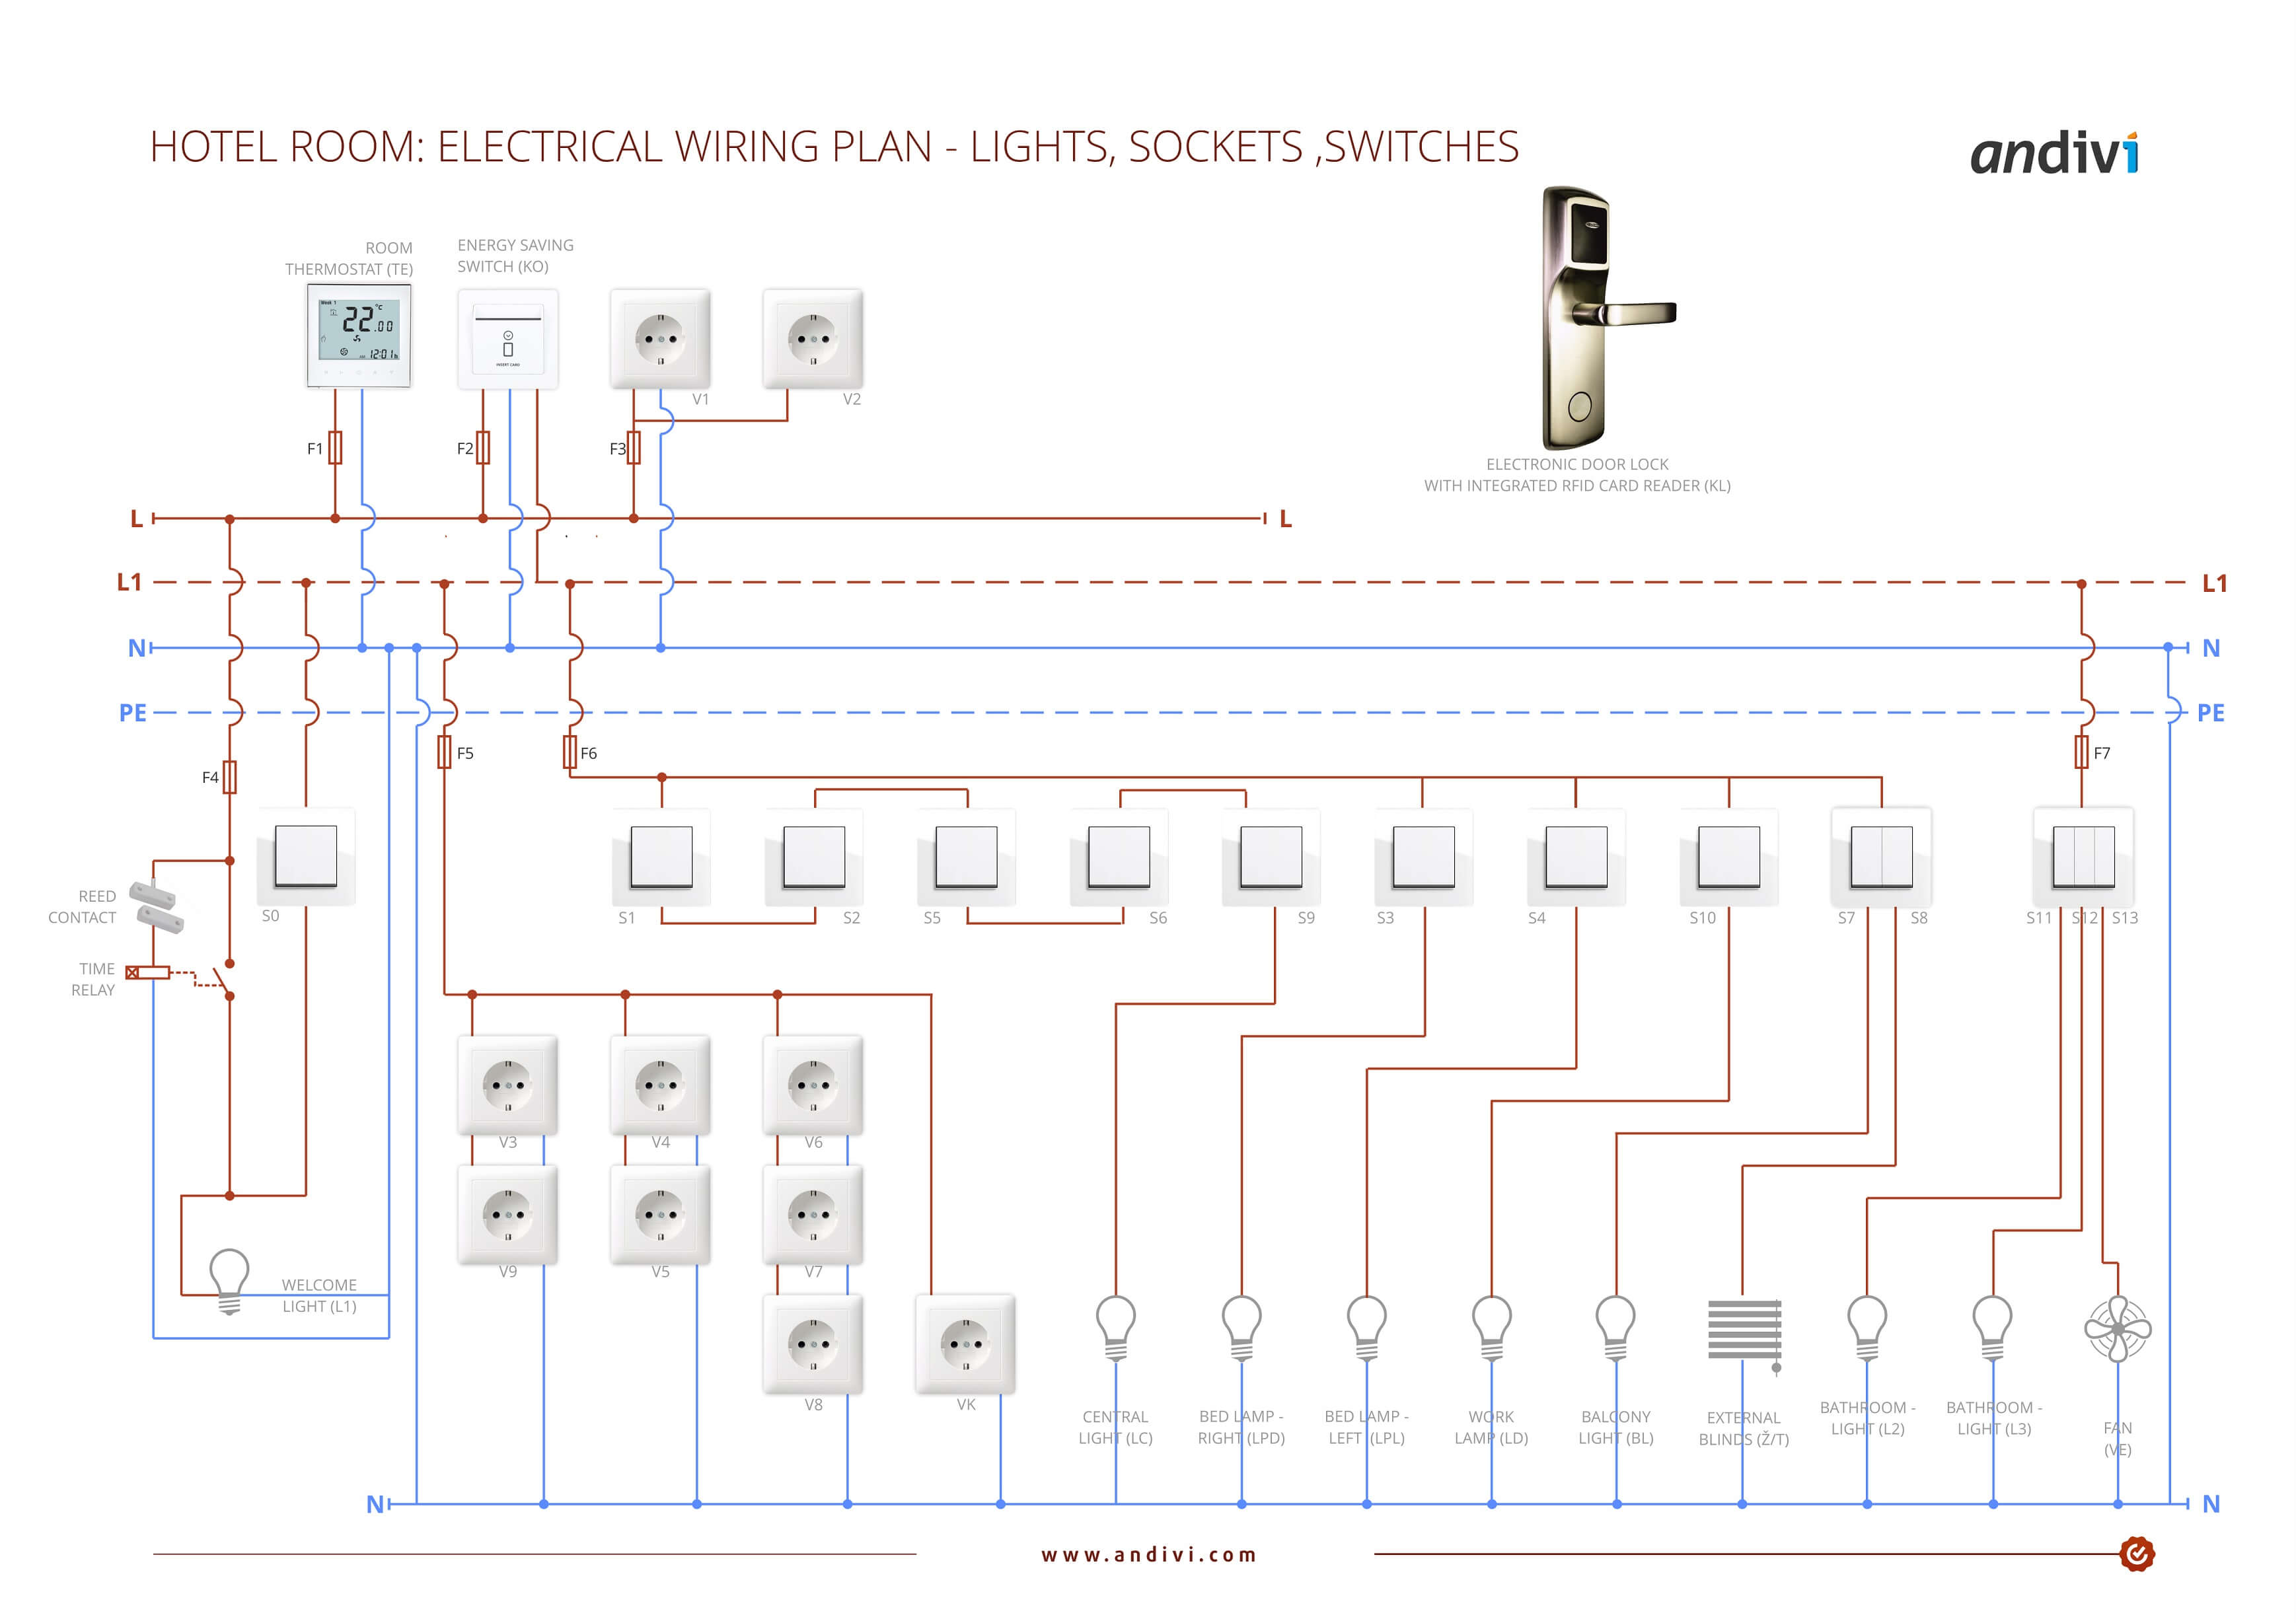 Electrical Installations Layout Plan For A Typical Hotel Running Wiring At Home Room Lights Sockets Switches